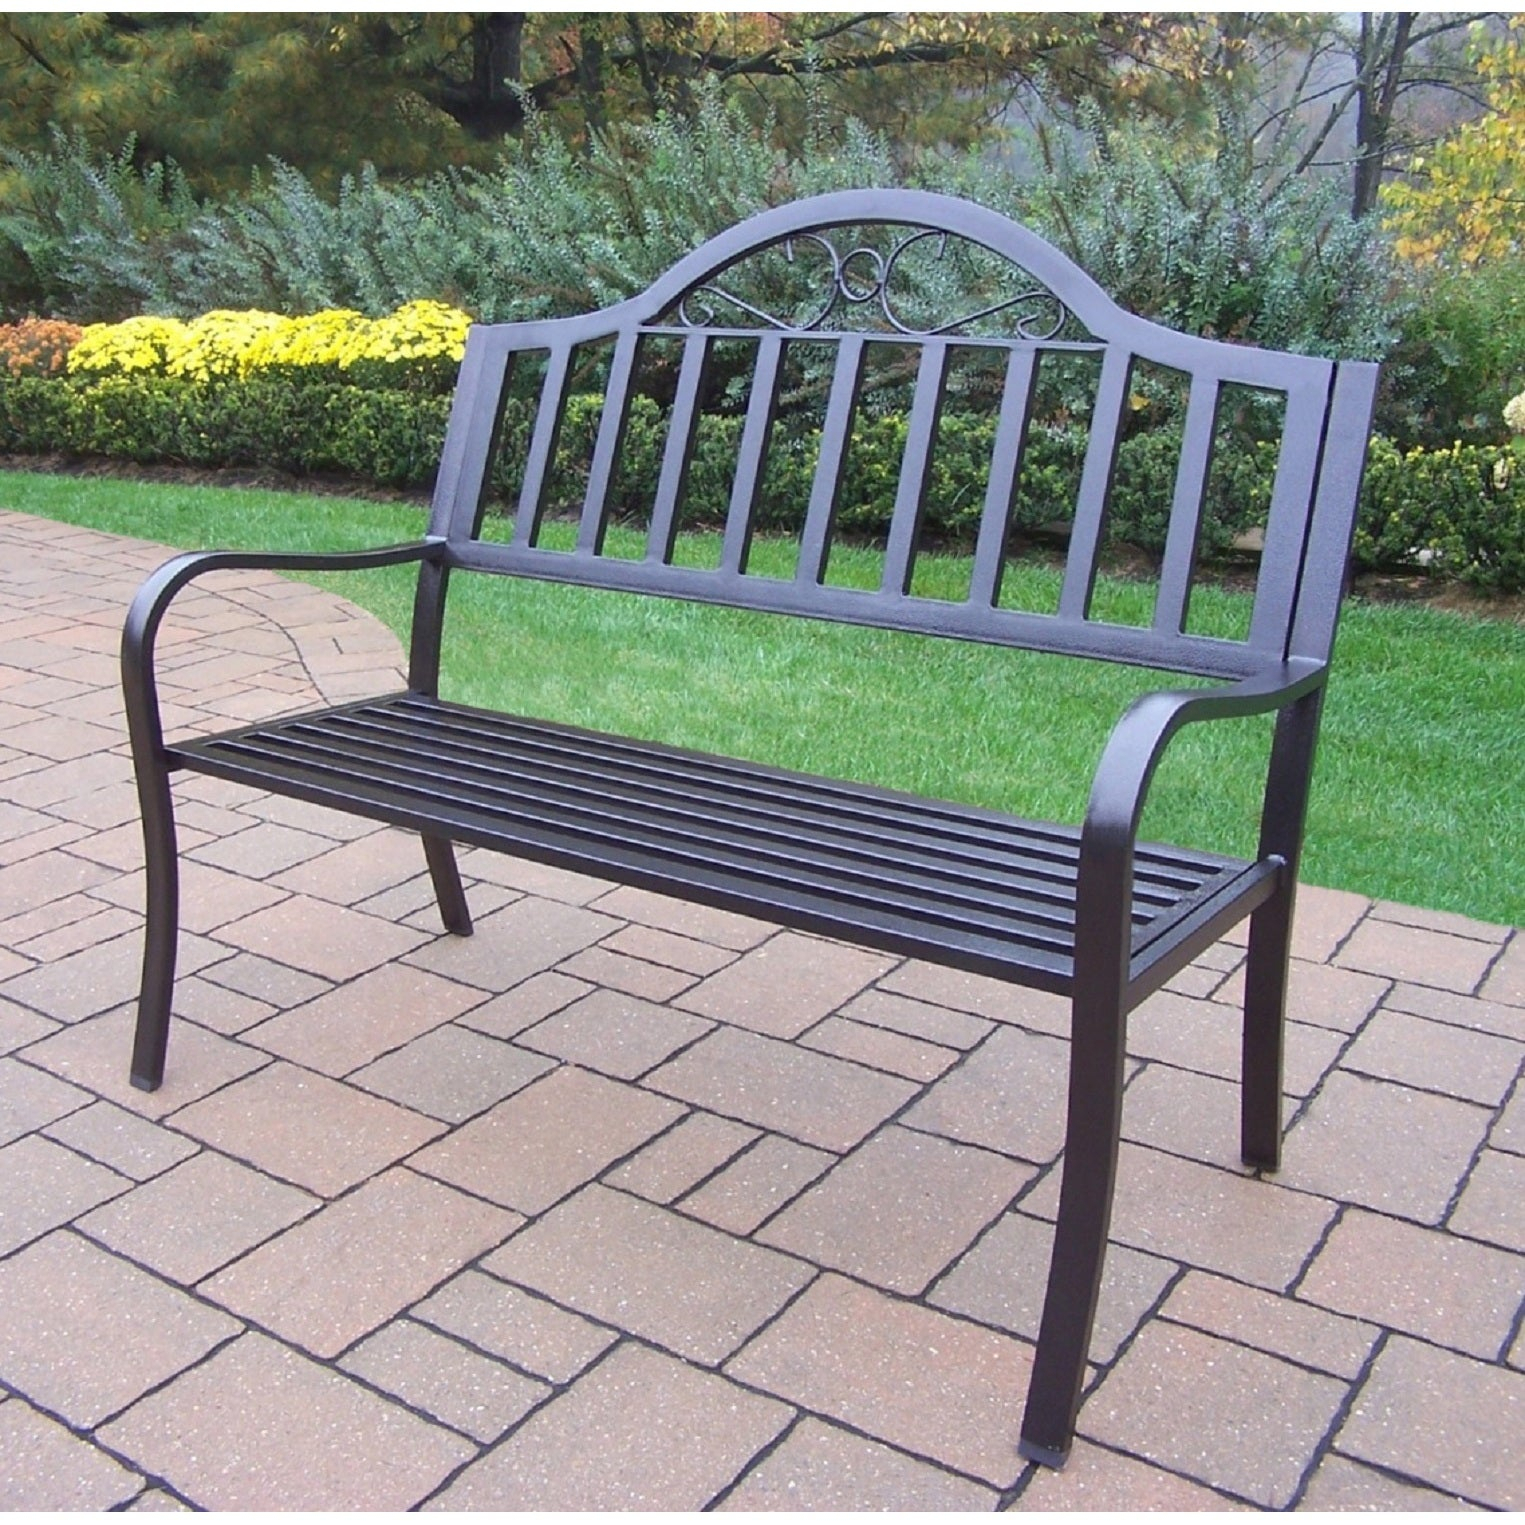 Hometown Wrought Iron Bench Intended For Celtic Knot Iron Garden Benches (Photo 23 of 25)